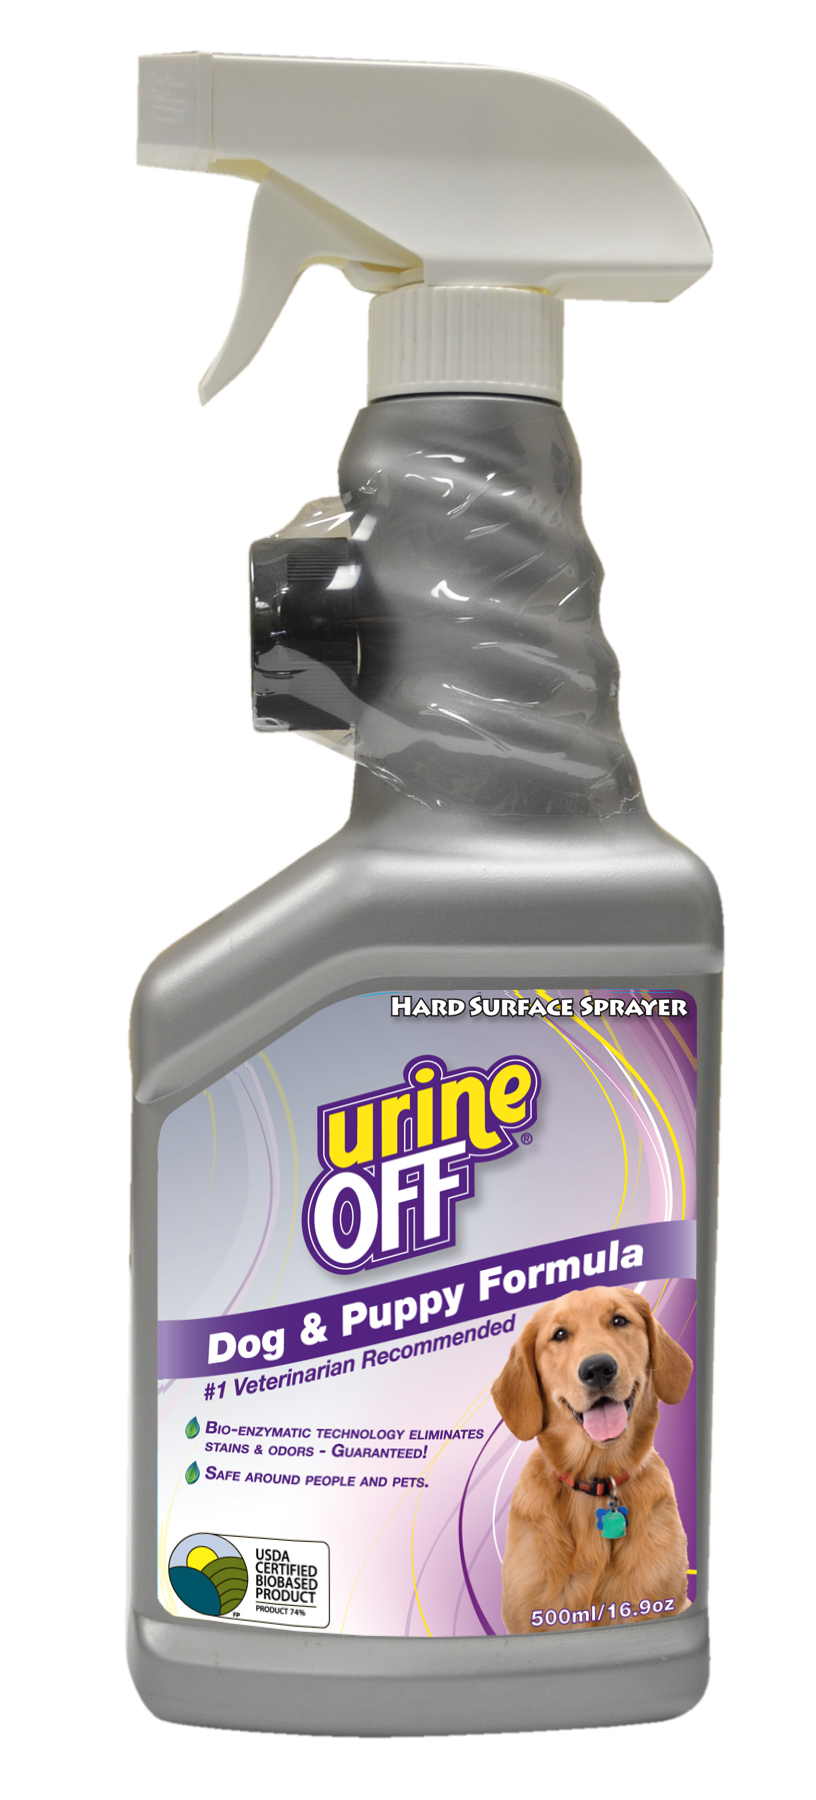 Urine-Off™ Dog & Puppy Formula 500 ml Sprayer with Carpet Cap